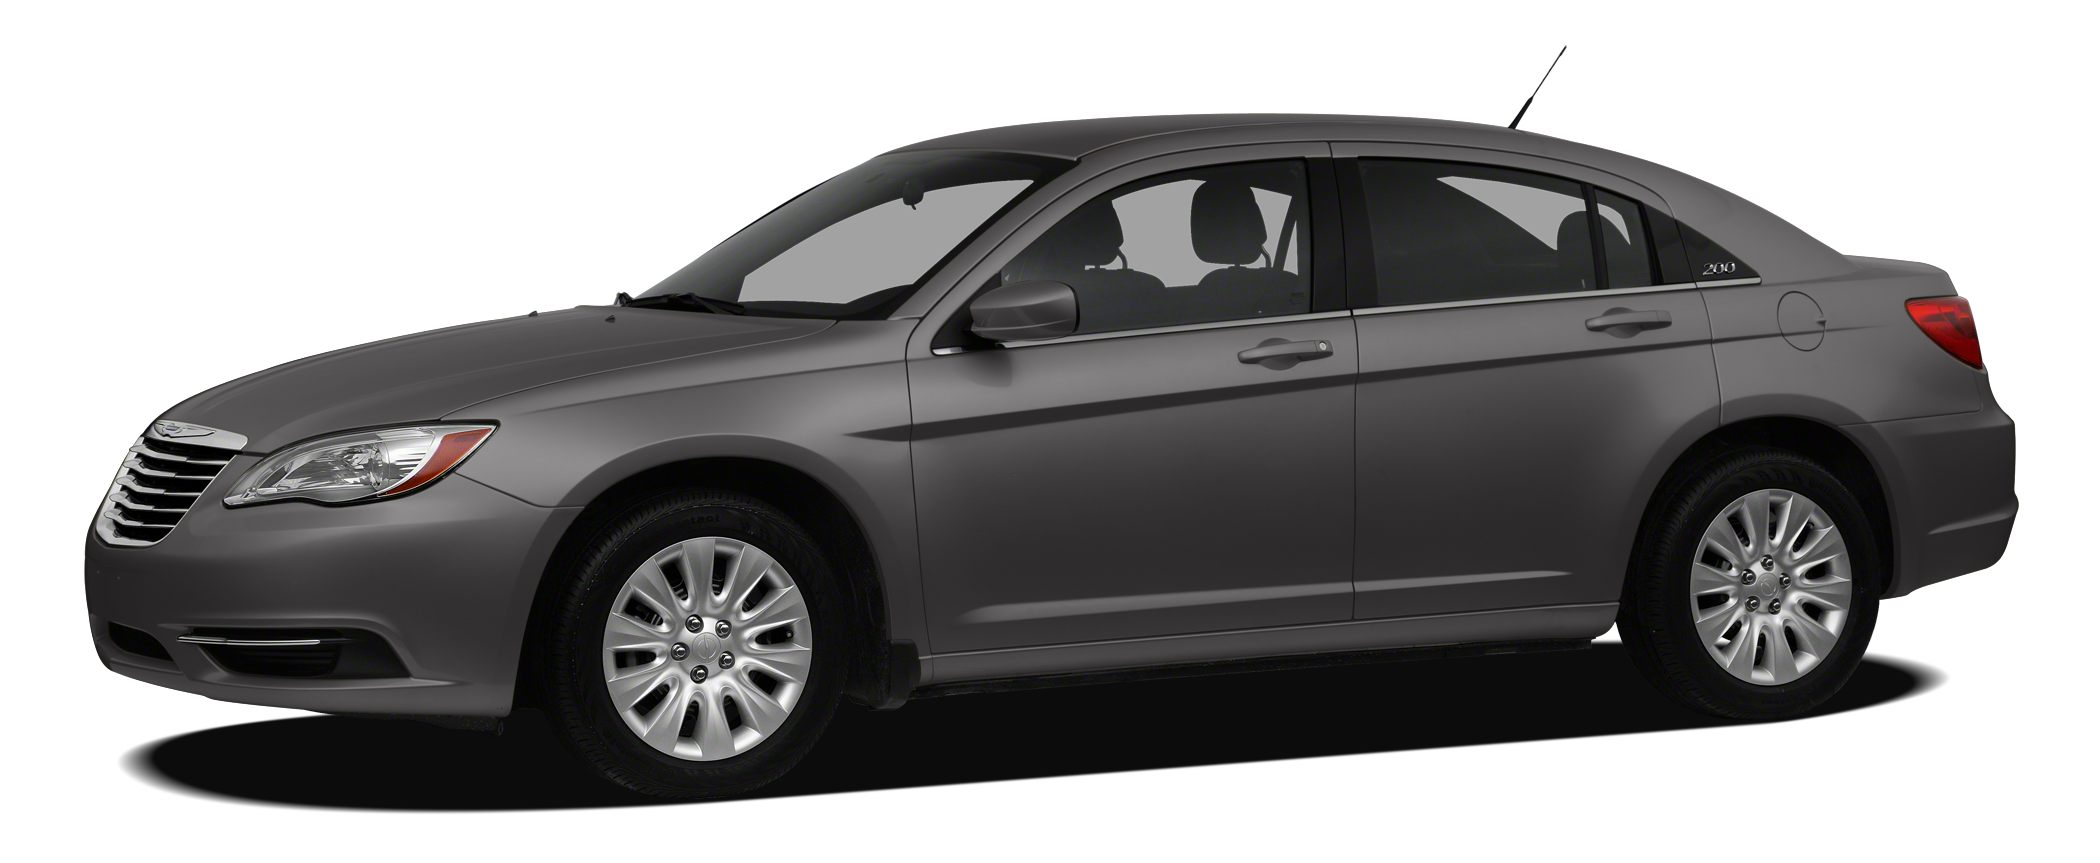 2011 Chrysler 200 Touring CARFAX 1-Owner FUEL EFFICIENT 31 MPG Hwy20 MPG City 12000 Mile Warra